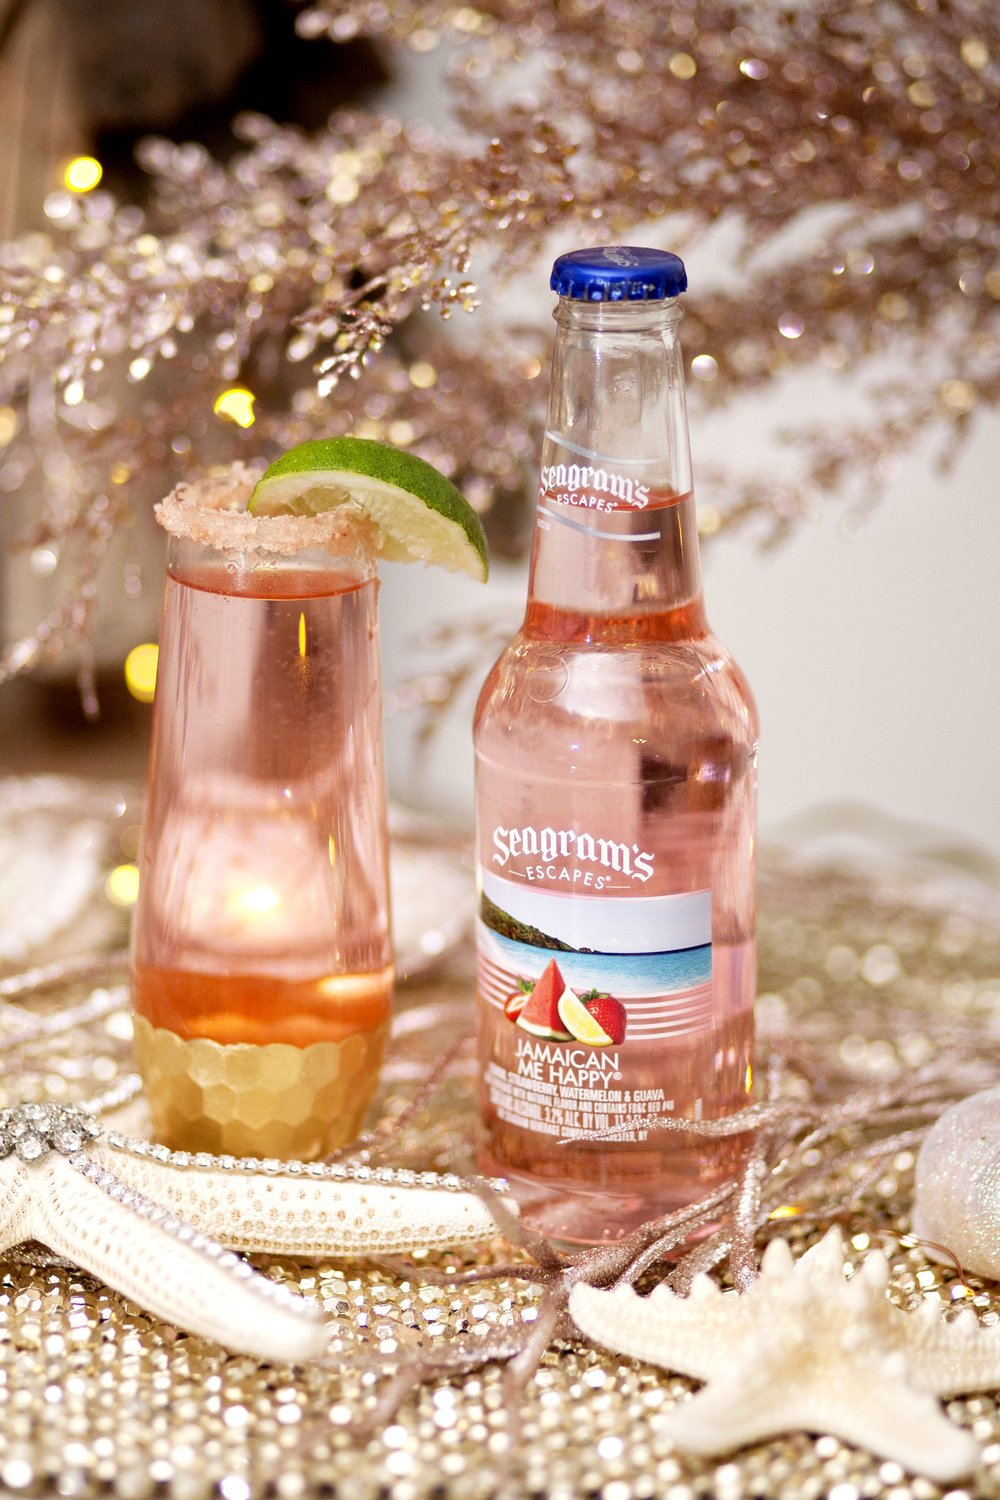 Seagram's Escapes Jamaican Me Happy